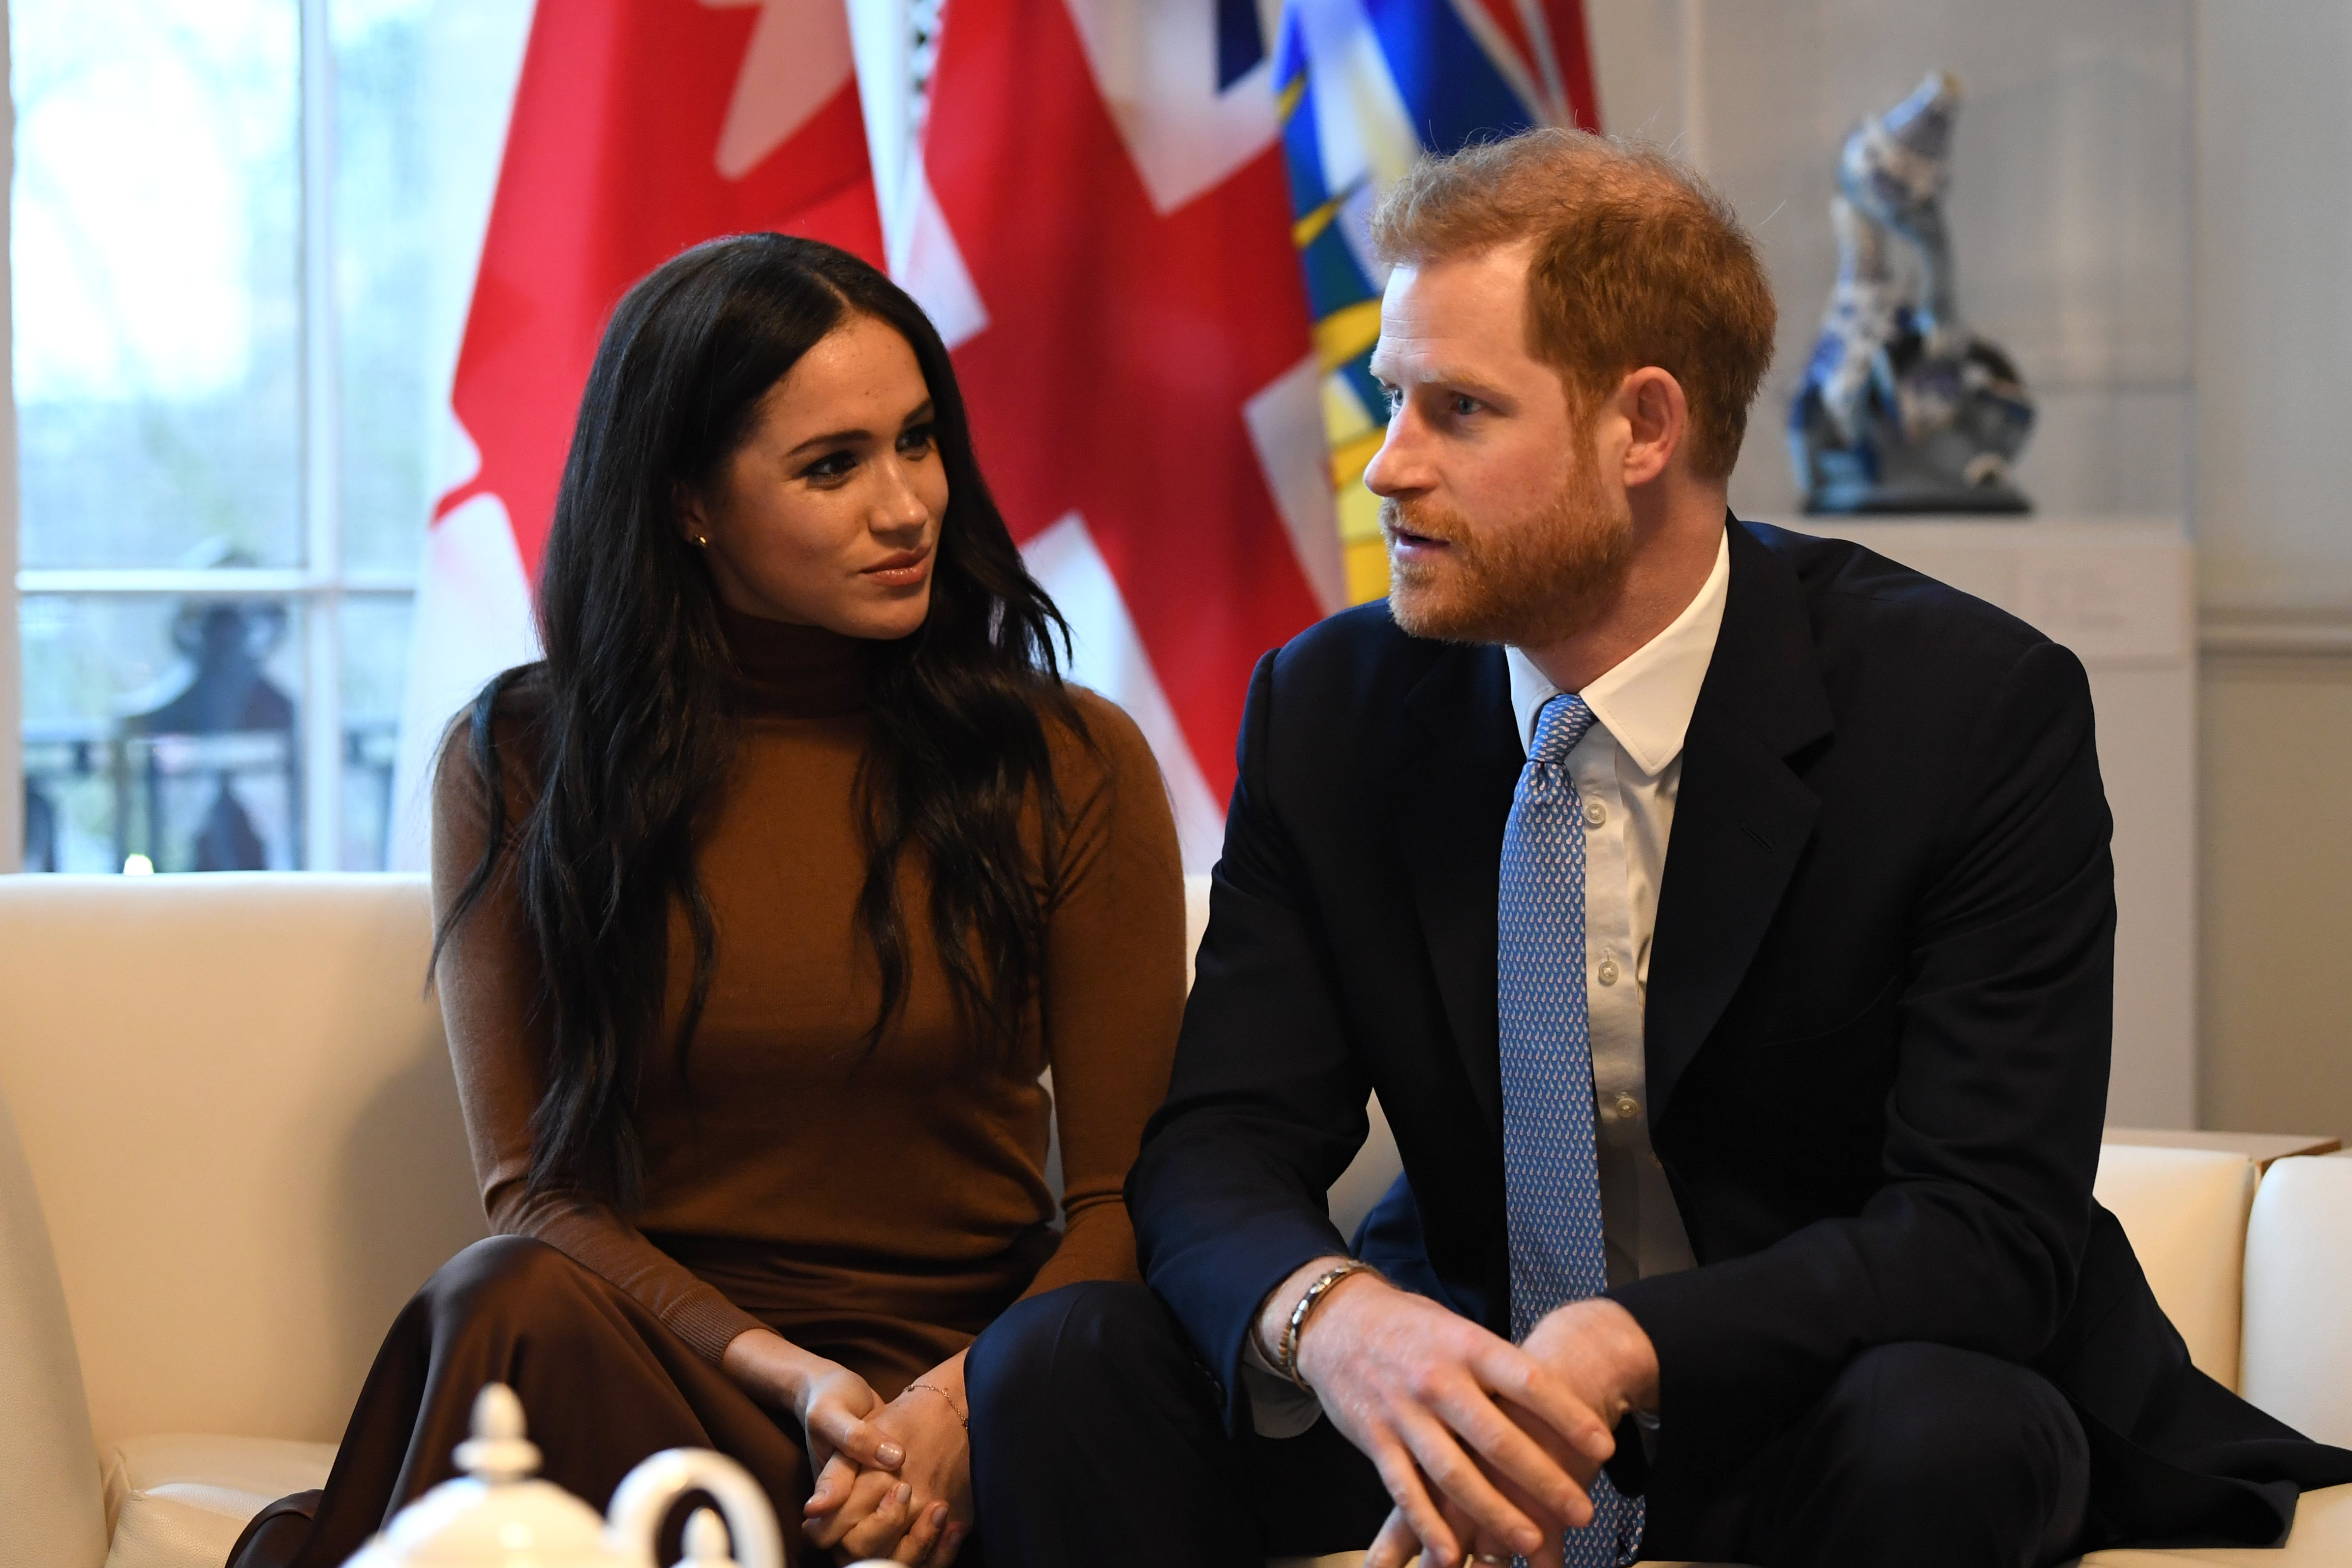 Prince Harry, Duke of Sussex and Meghan, Duchess of Sussex during their visit to Canada House on January 7, 2020 | Photo: GettyImages